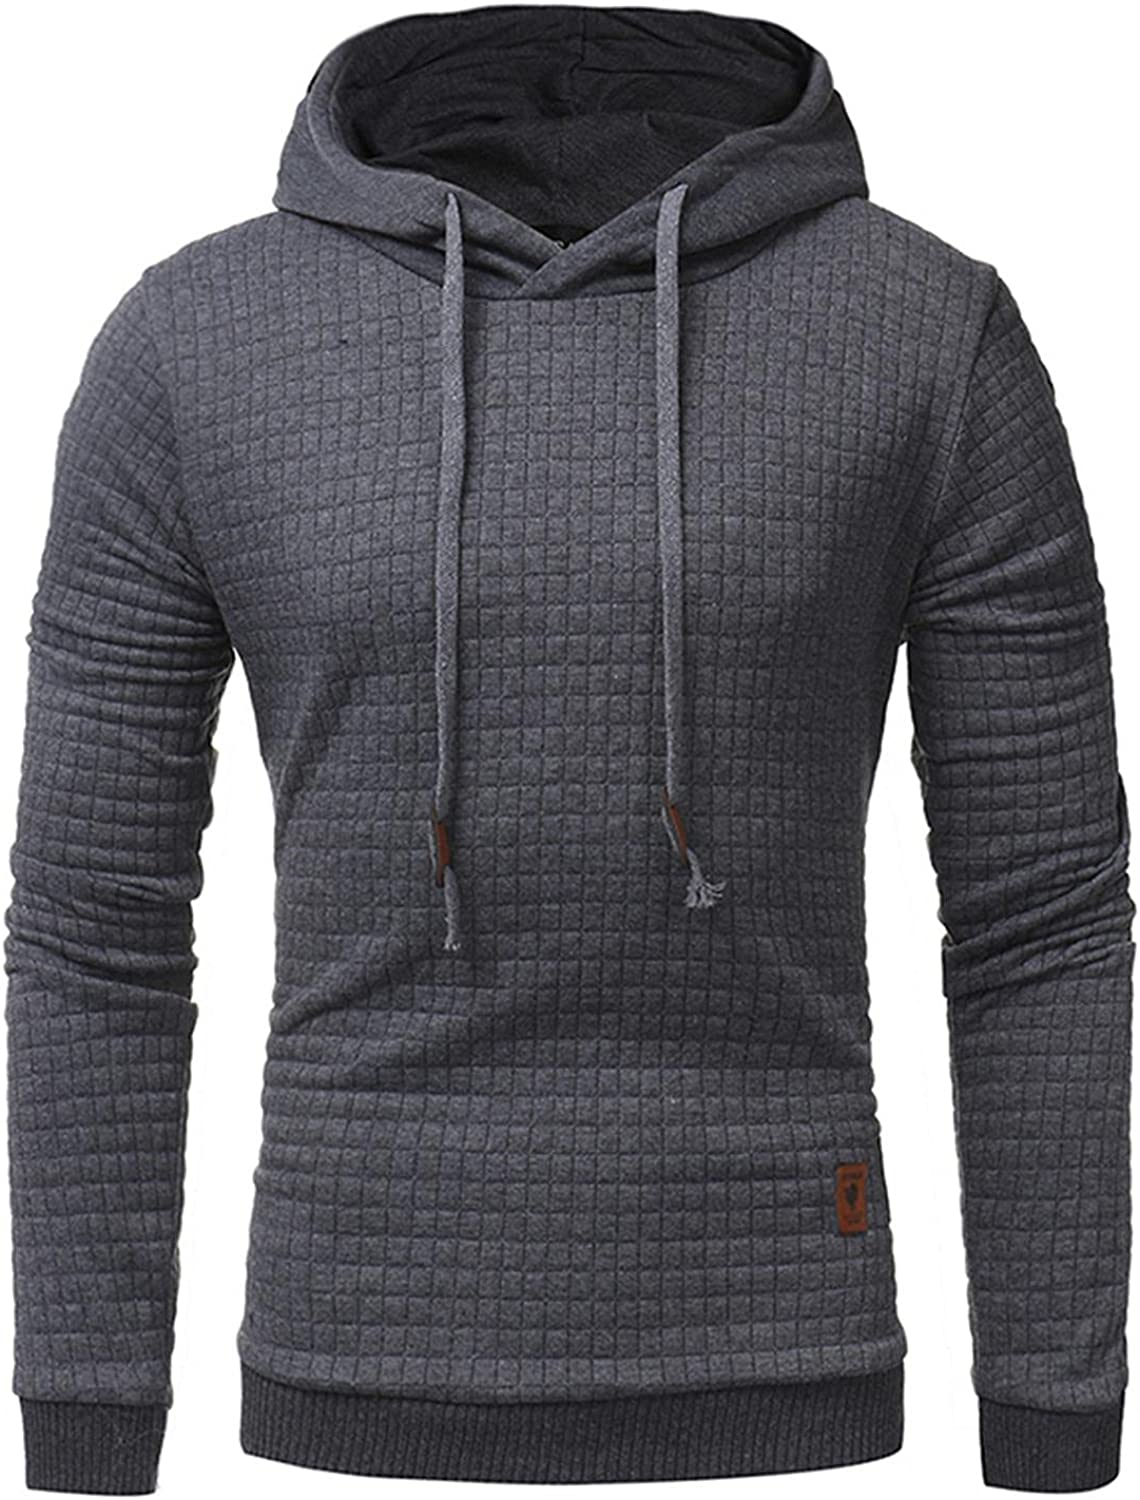 Mens Shirts Big and Tall Long Sleeve Pullover Jersey Lightweight Hoodies Athletic Sport Hoodies